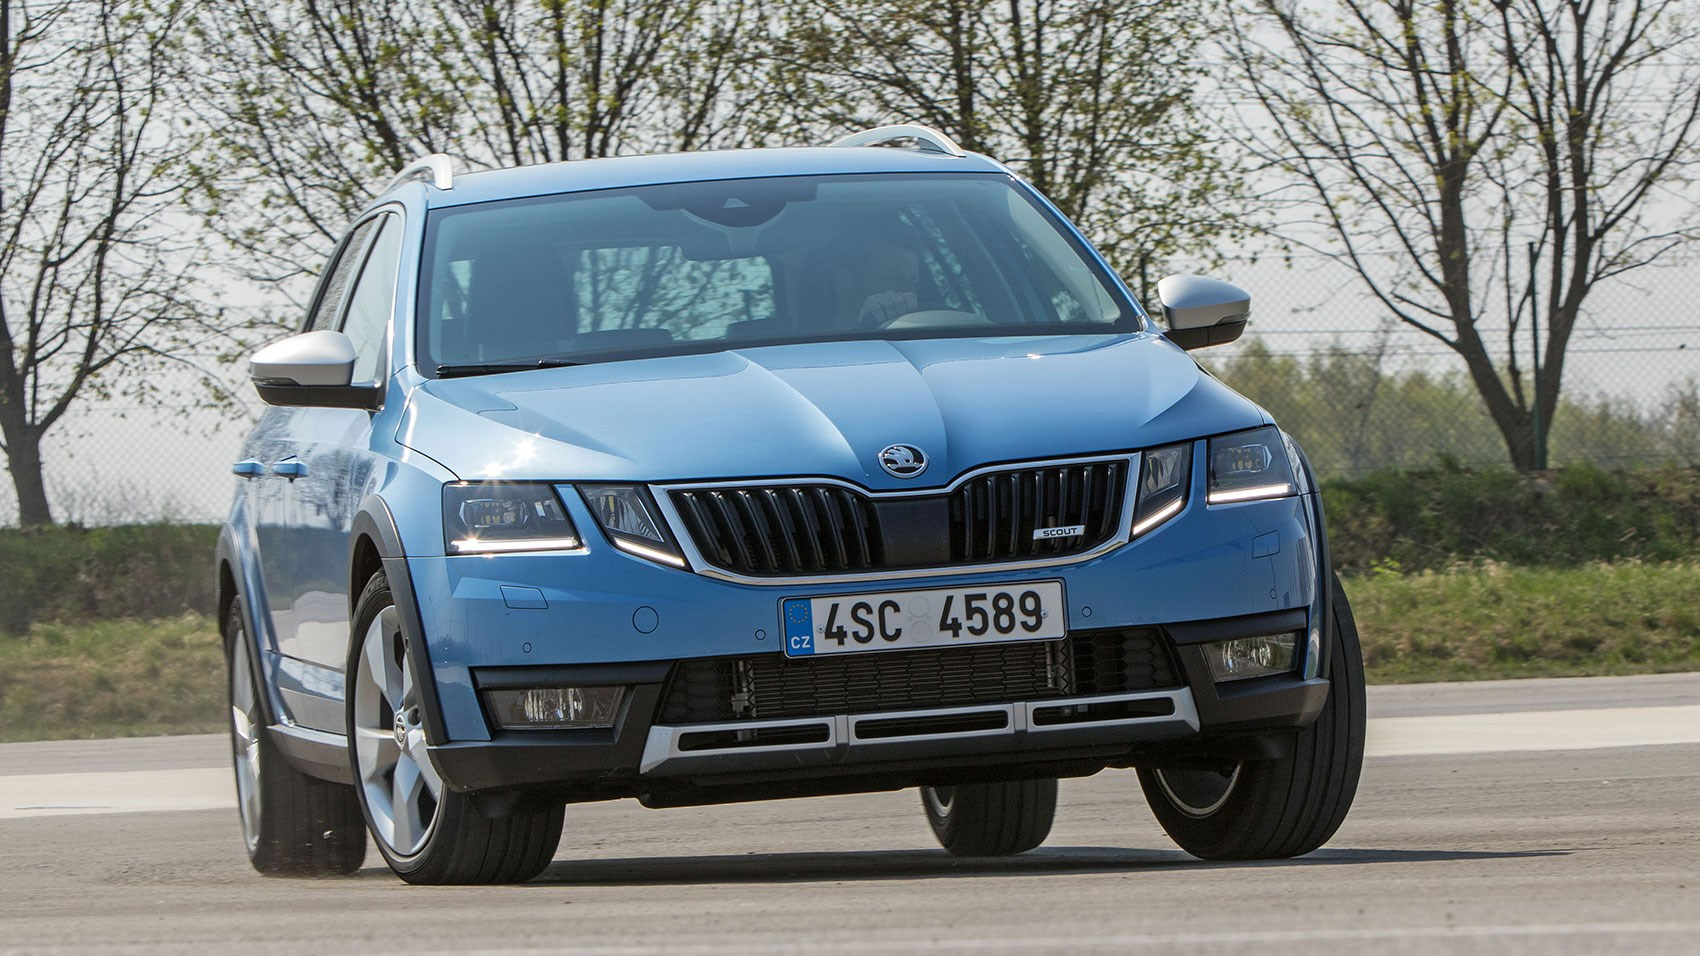 Skoda Octavia Scout - the 2017 facelift